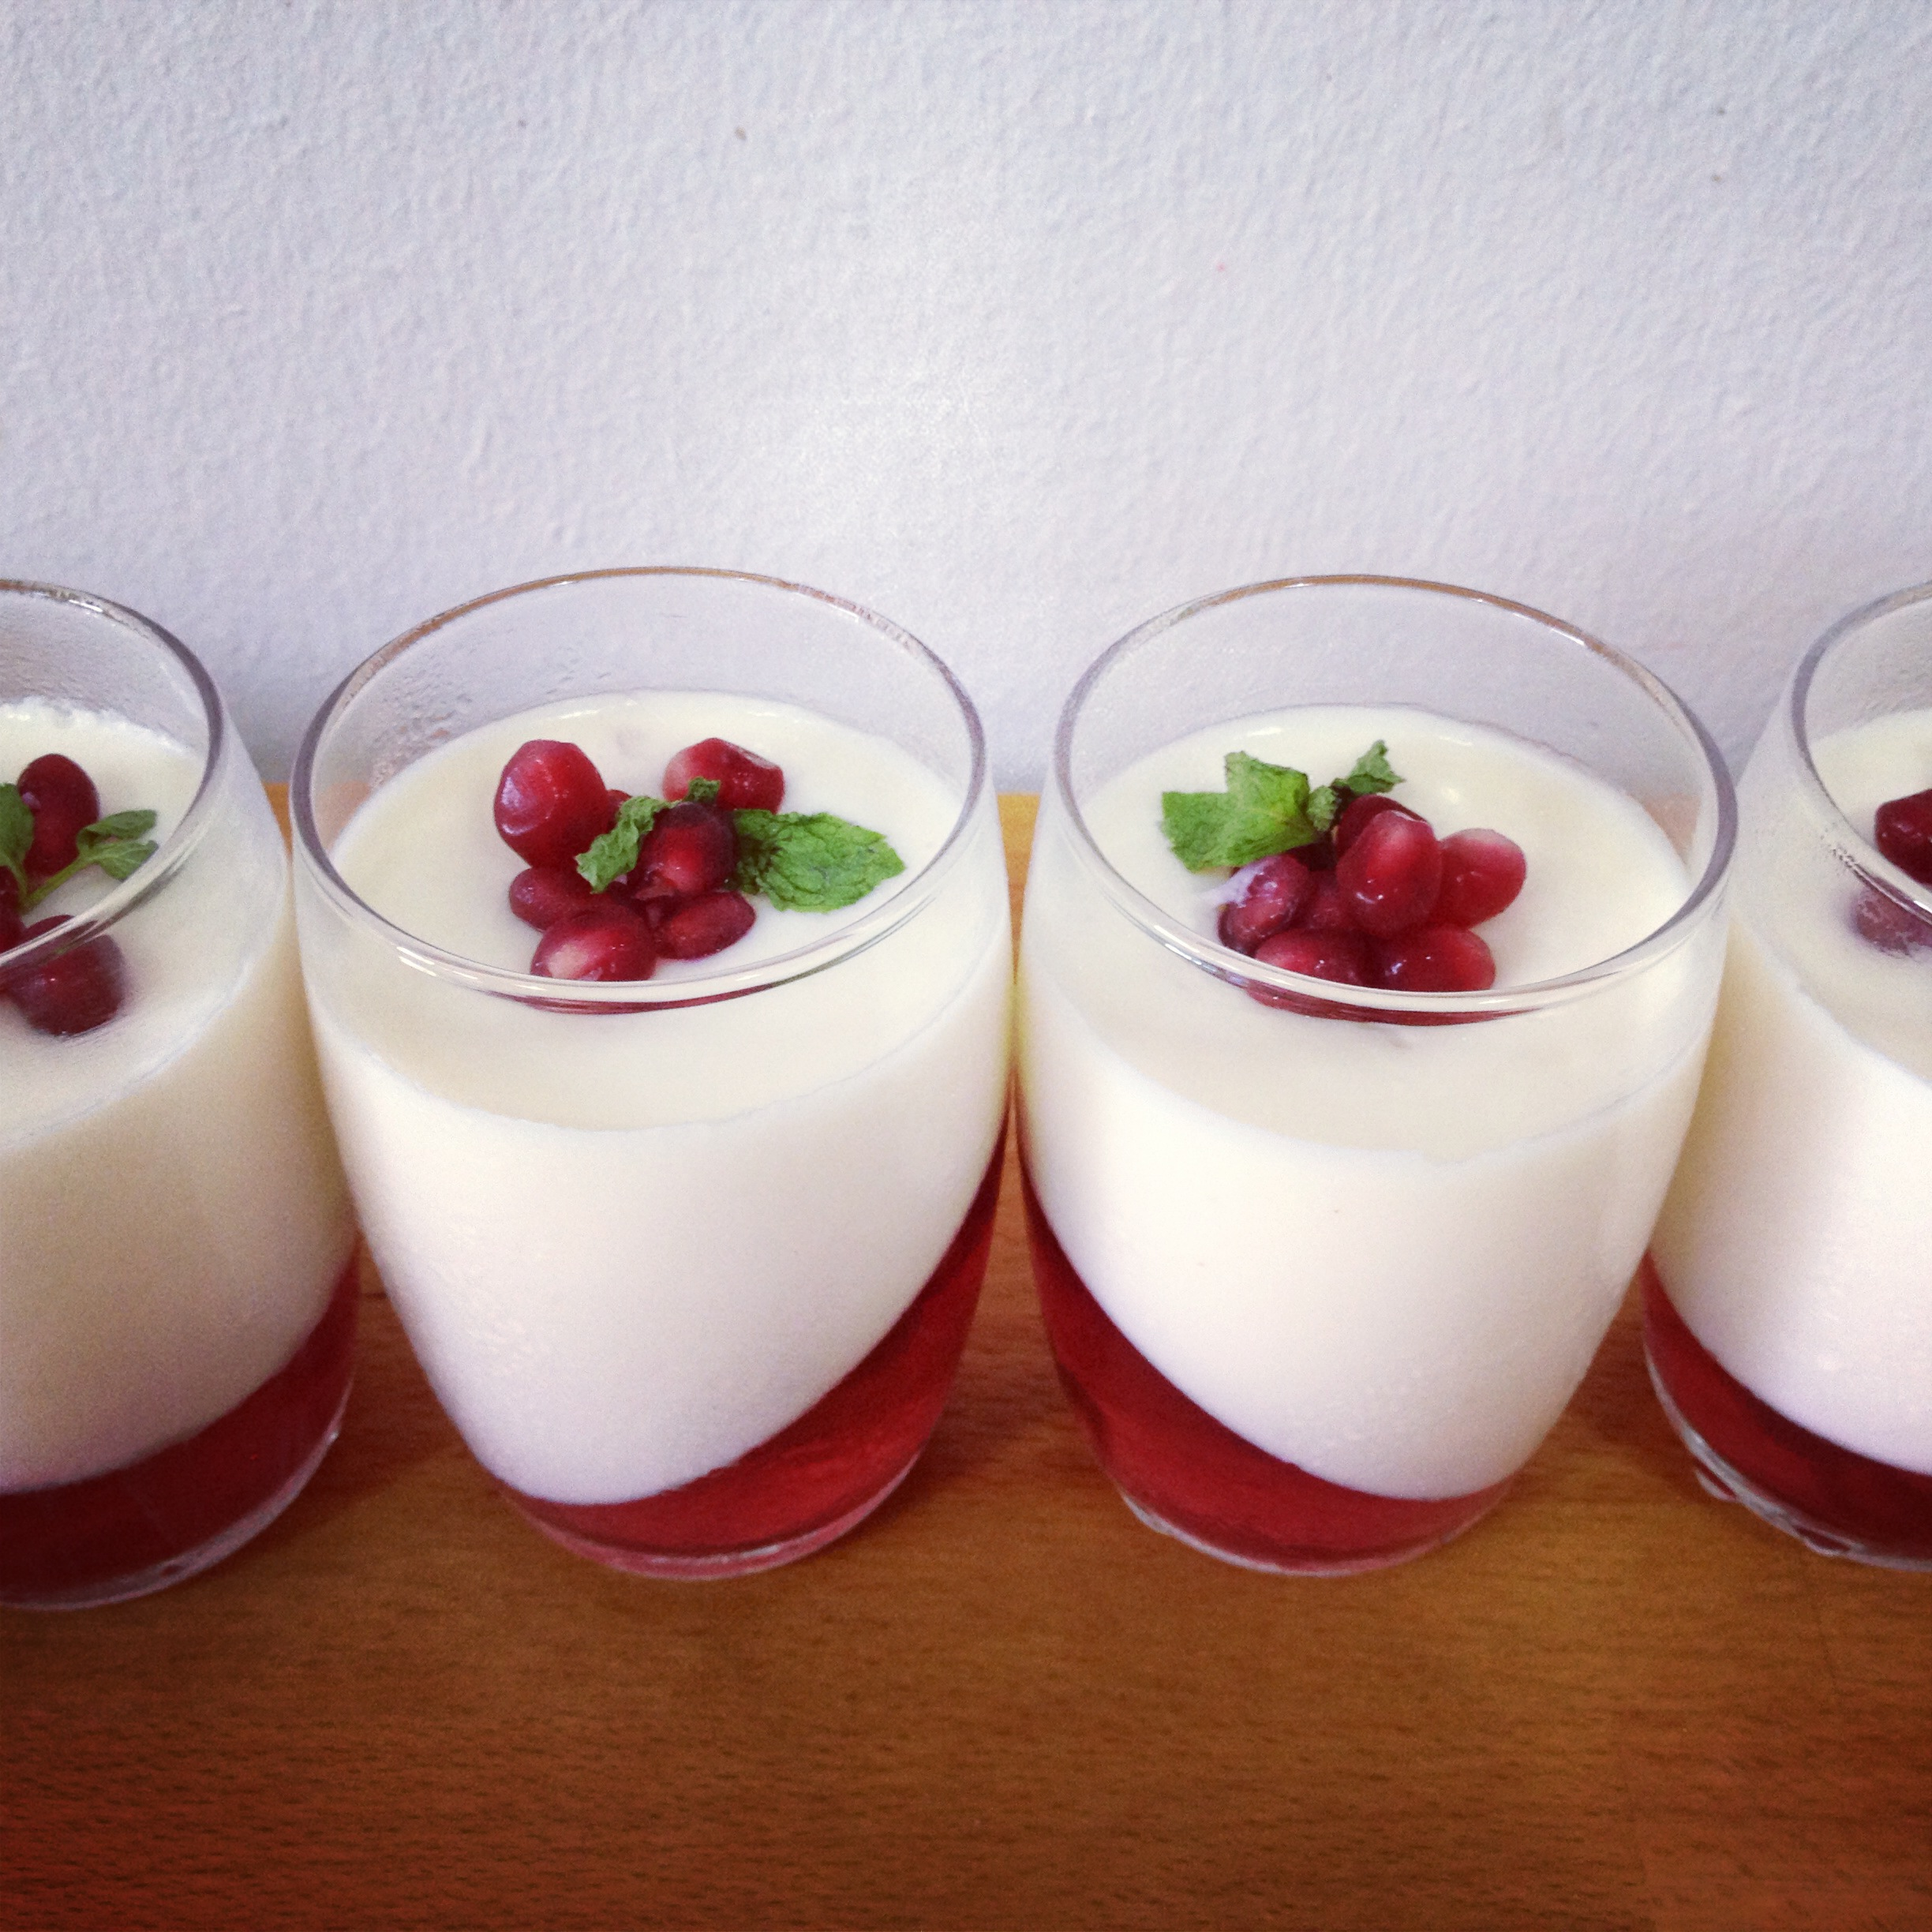 cny inspired recipe 3 lychee panna cotta with pomegranate jelly fait maison. Black Bedroom Furniture Sets. Home Design Ideas